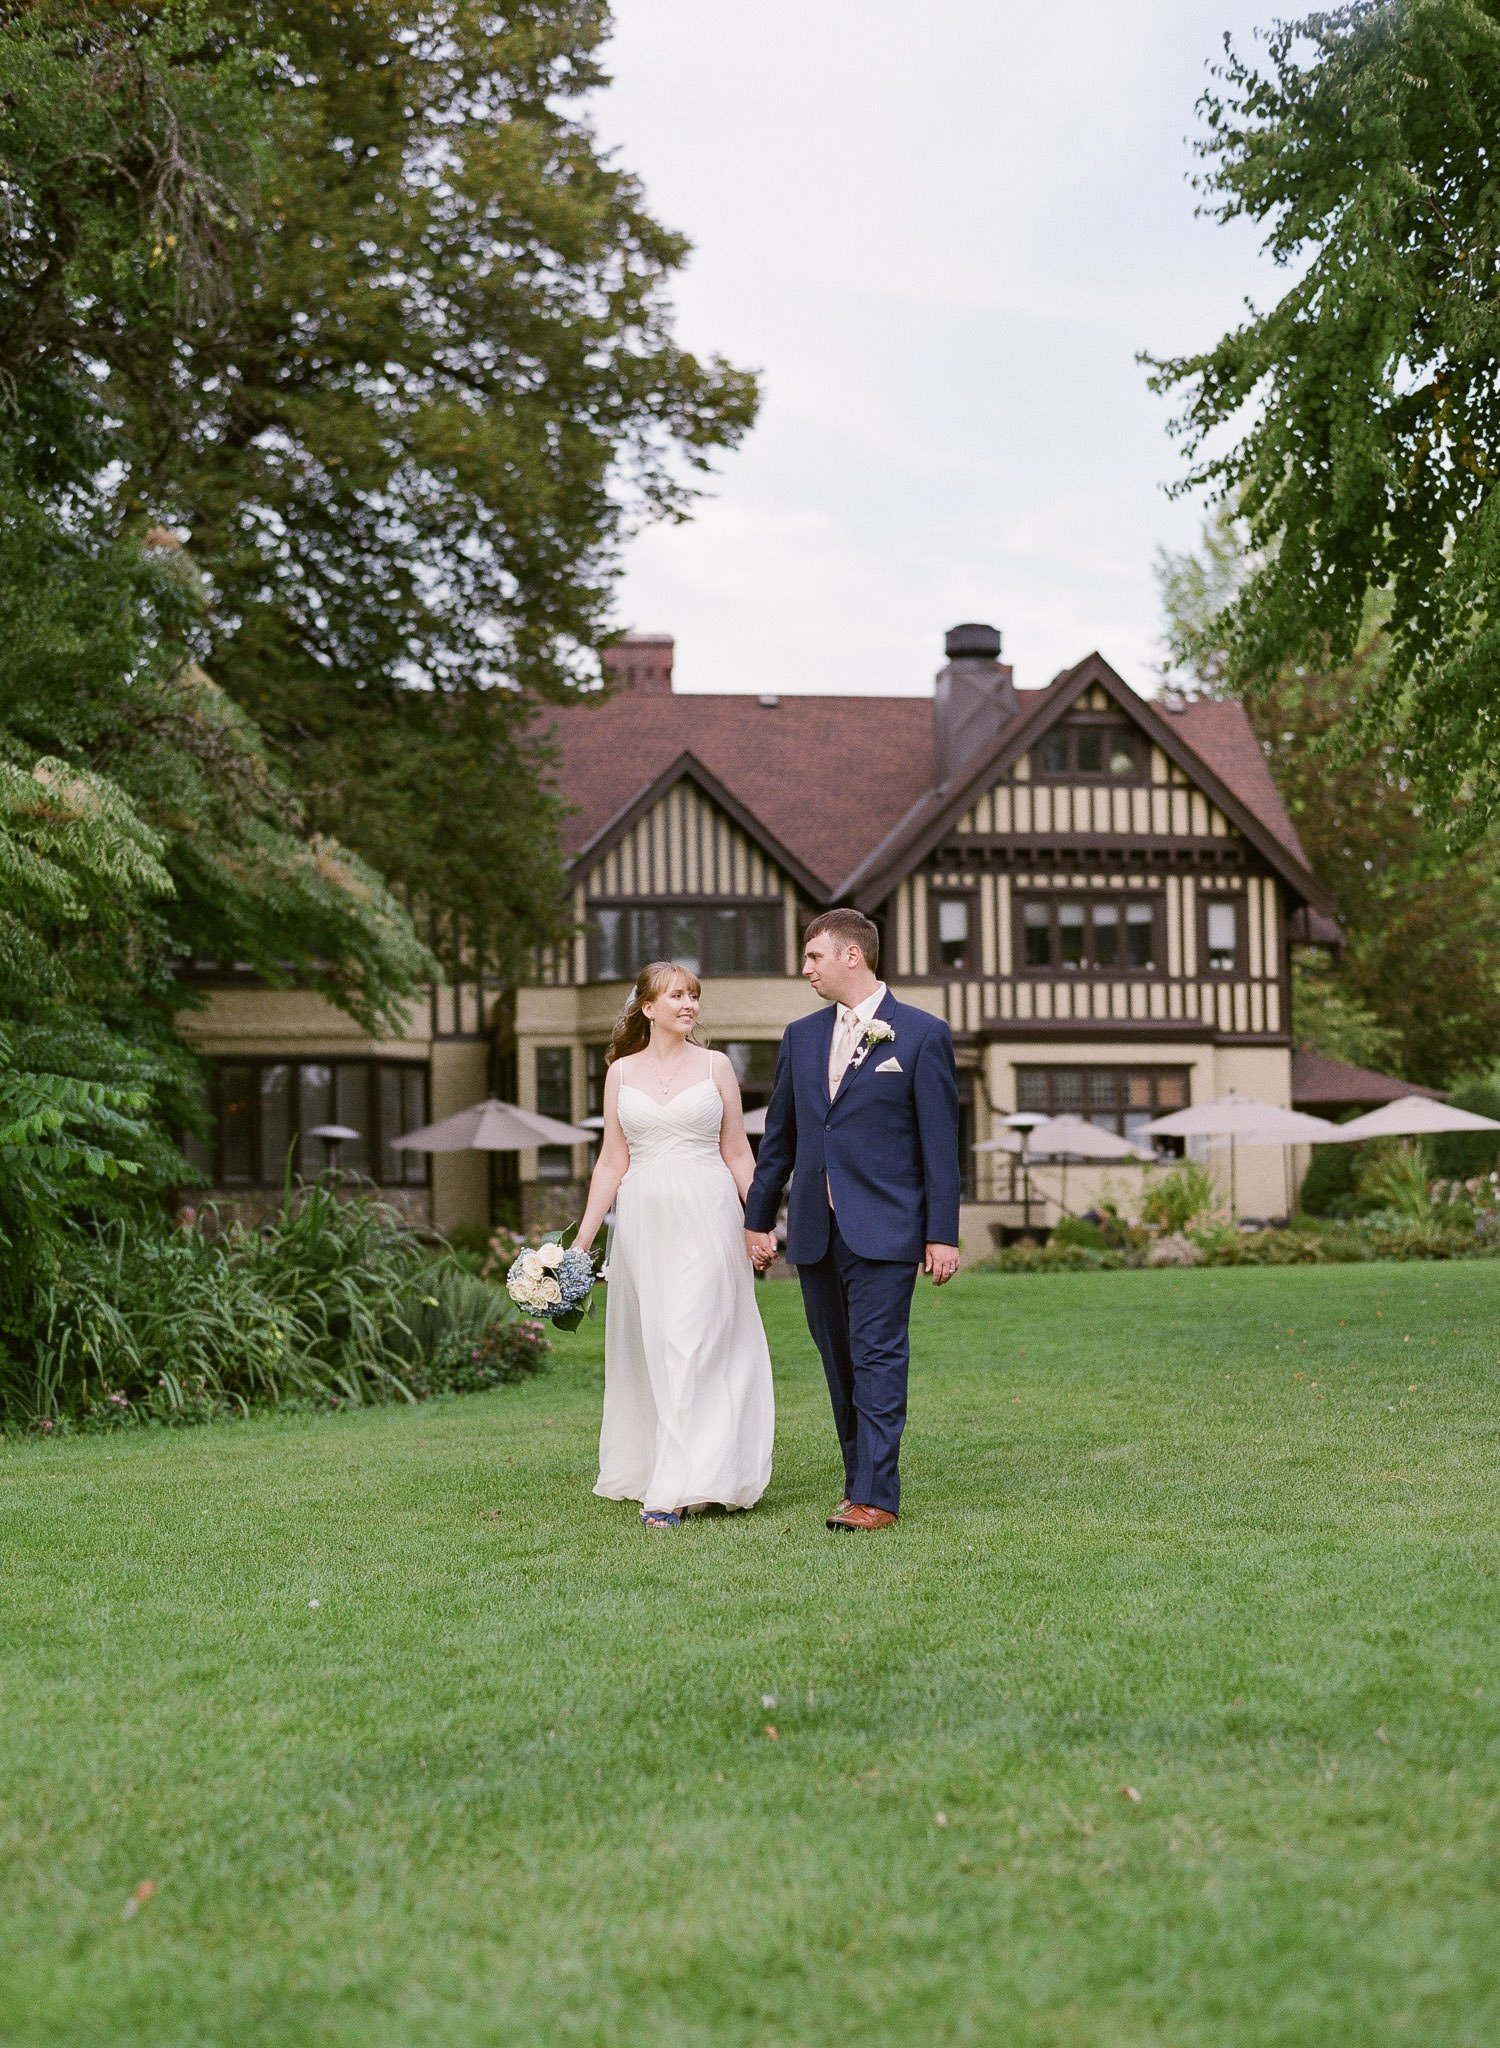 Newlyweds walking during photo session in front of the Vancouver wedding venue